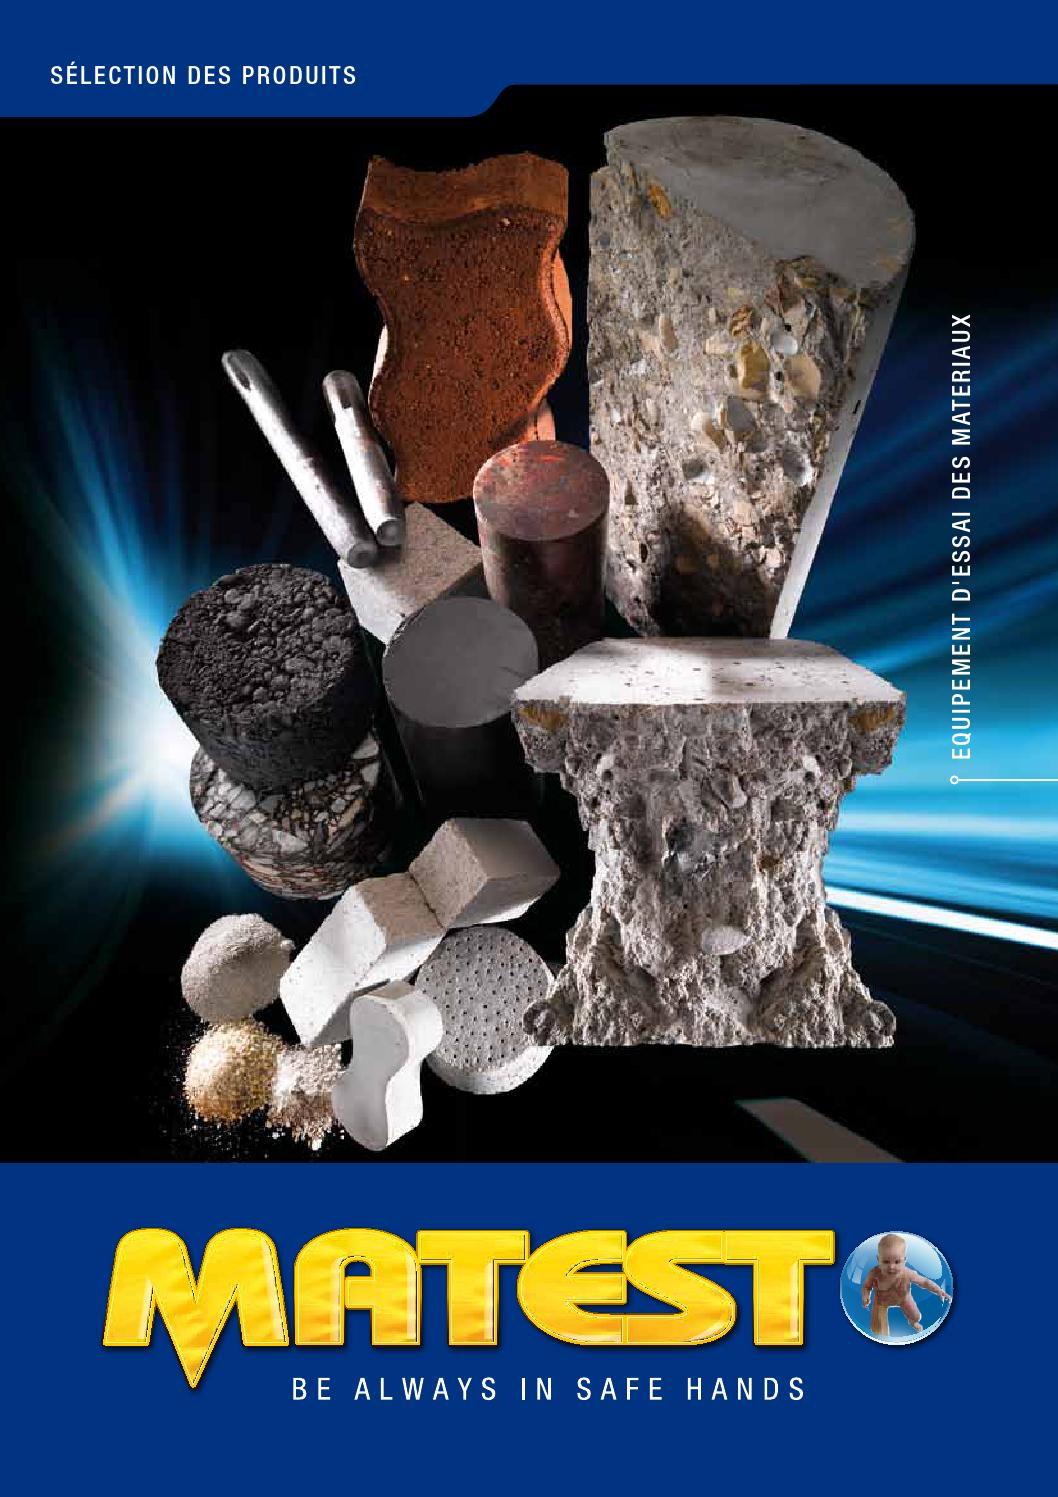 Issuu Matest Brochure Products Selection 2012 French By